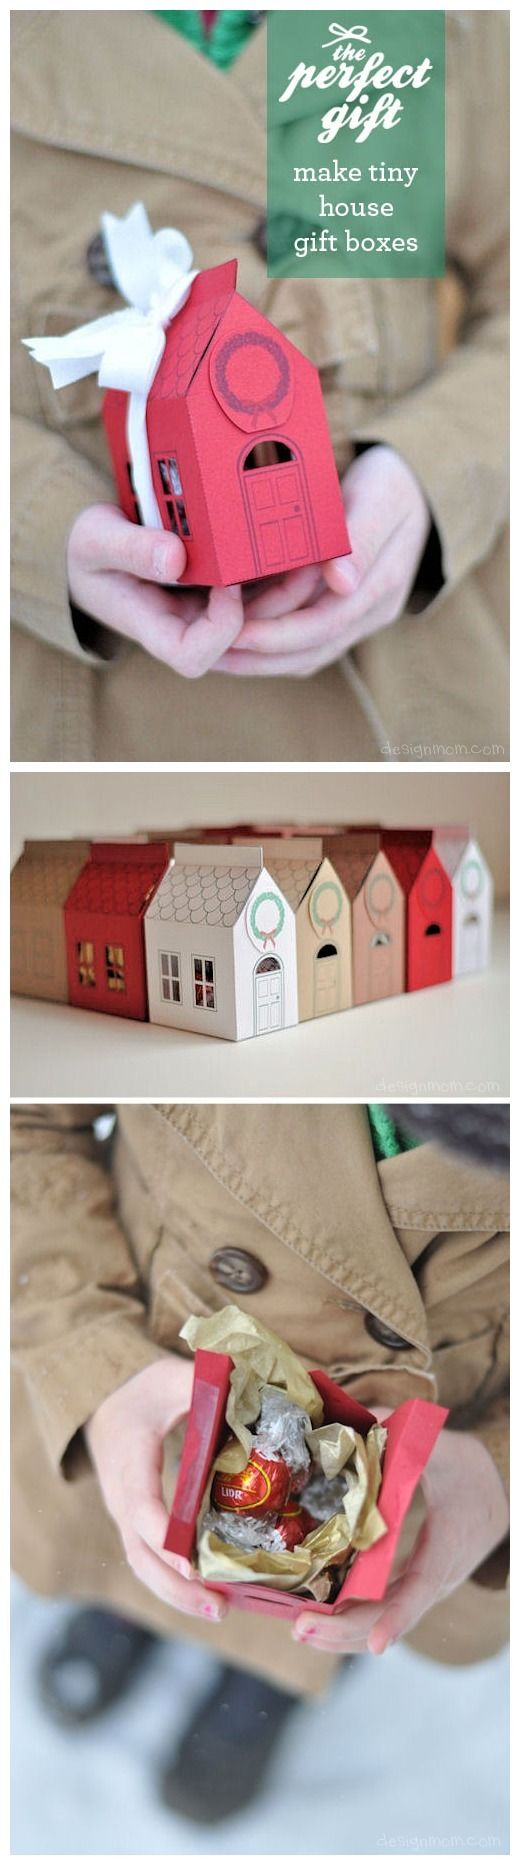 ~ I love these little homemade gift boxes ~ Free template house gift box by DesignMom